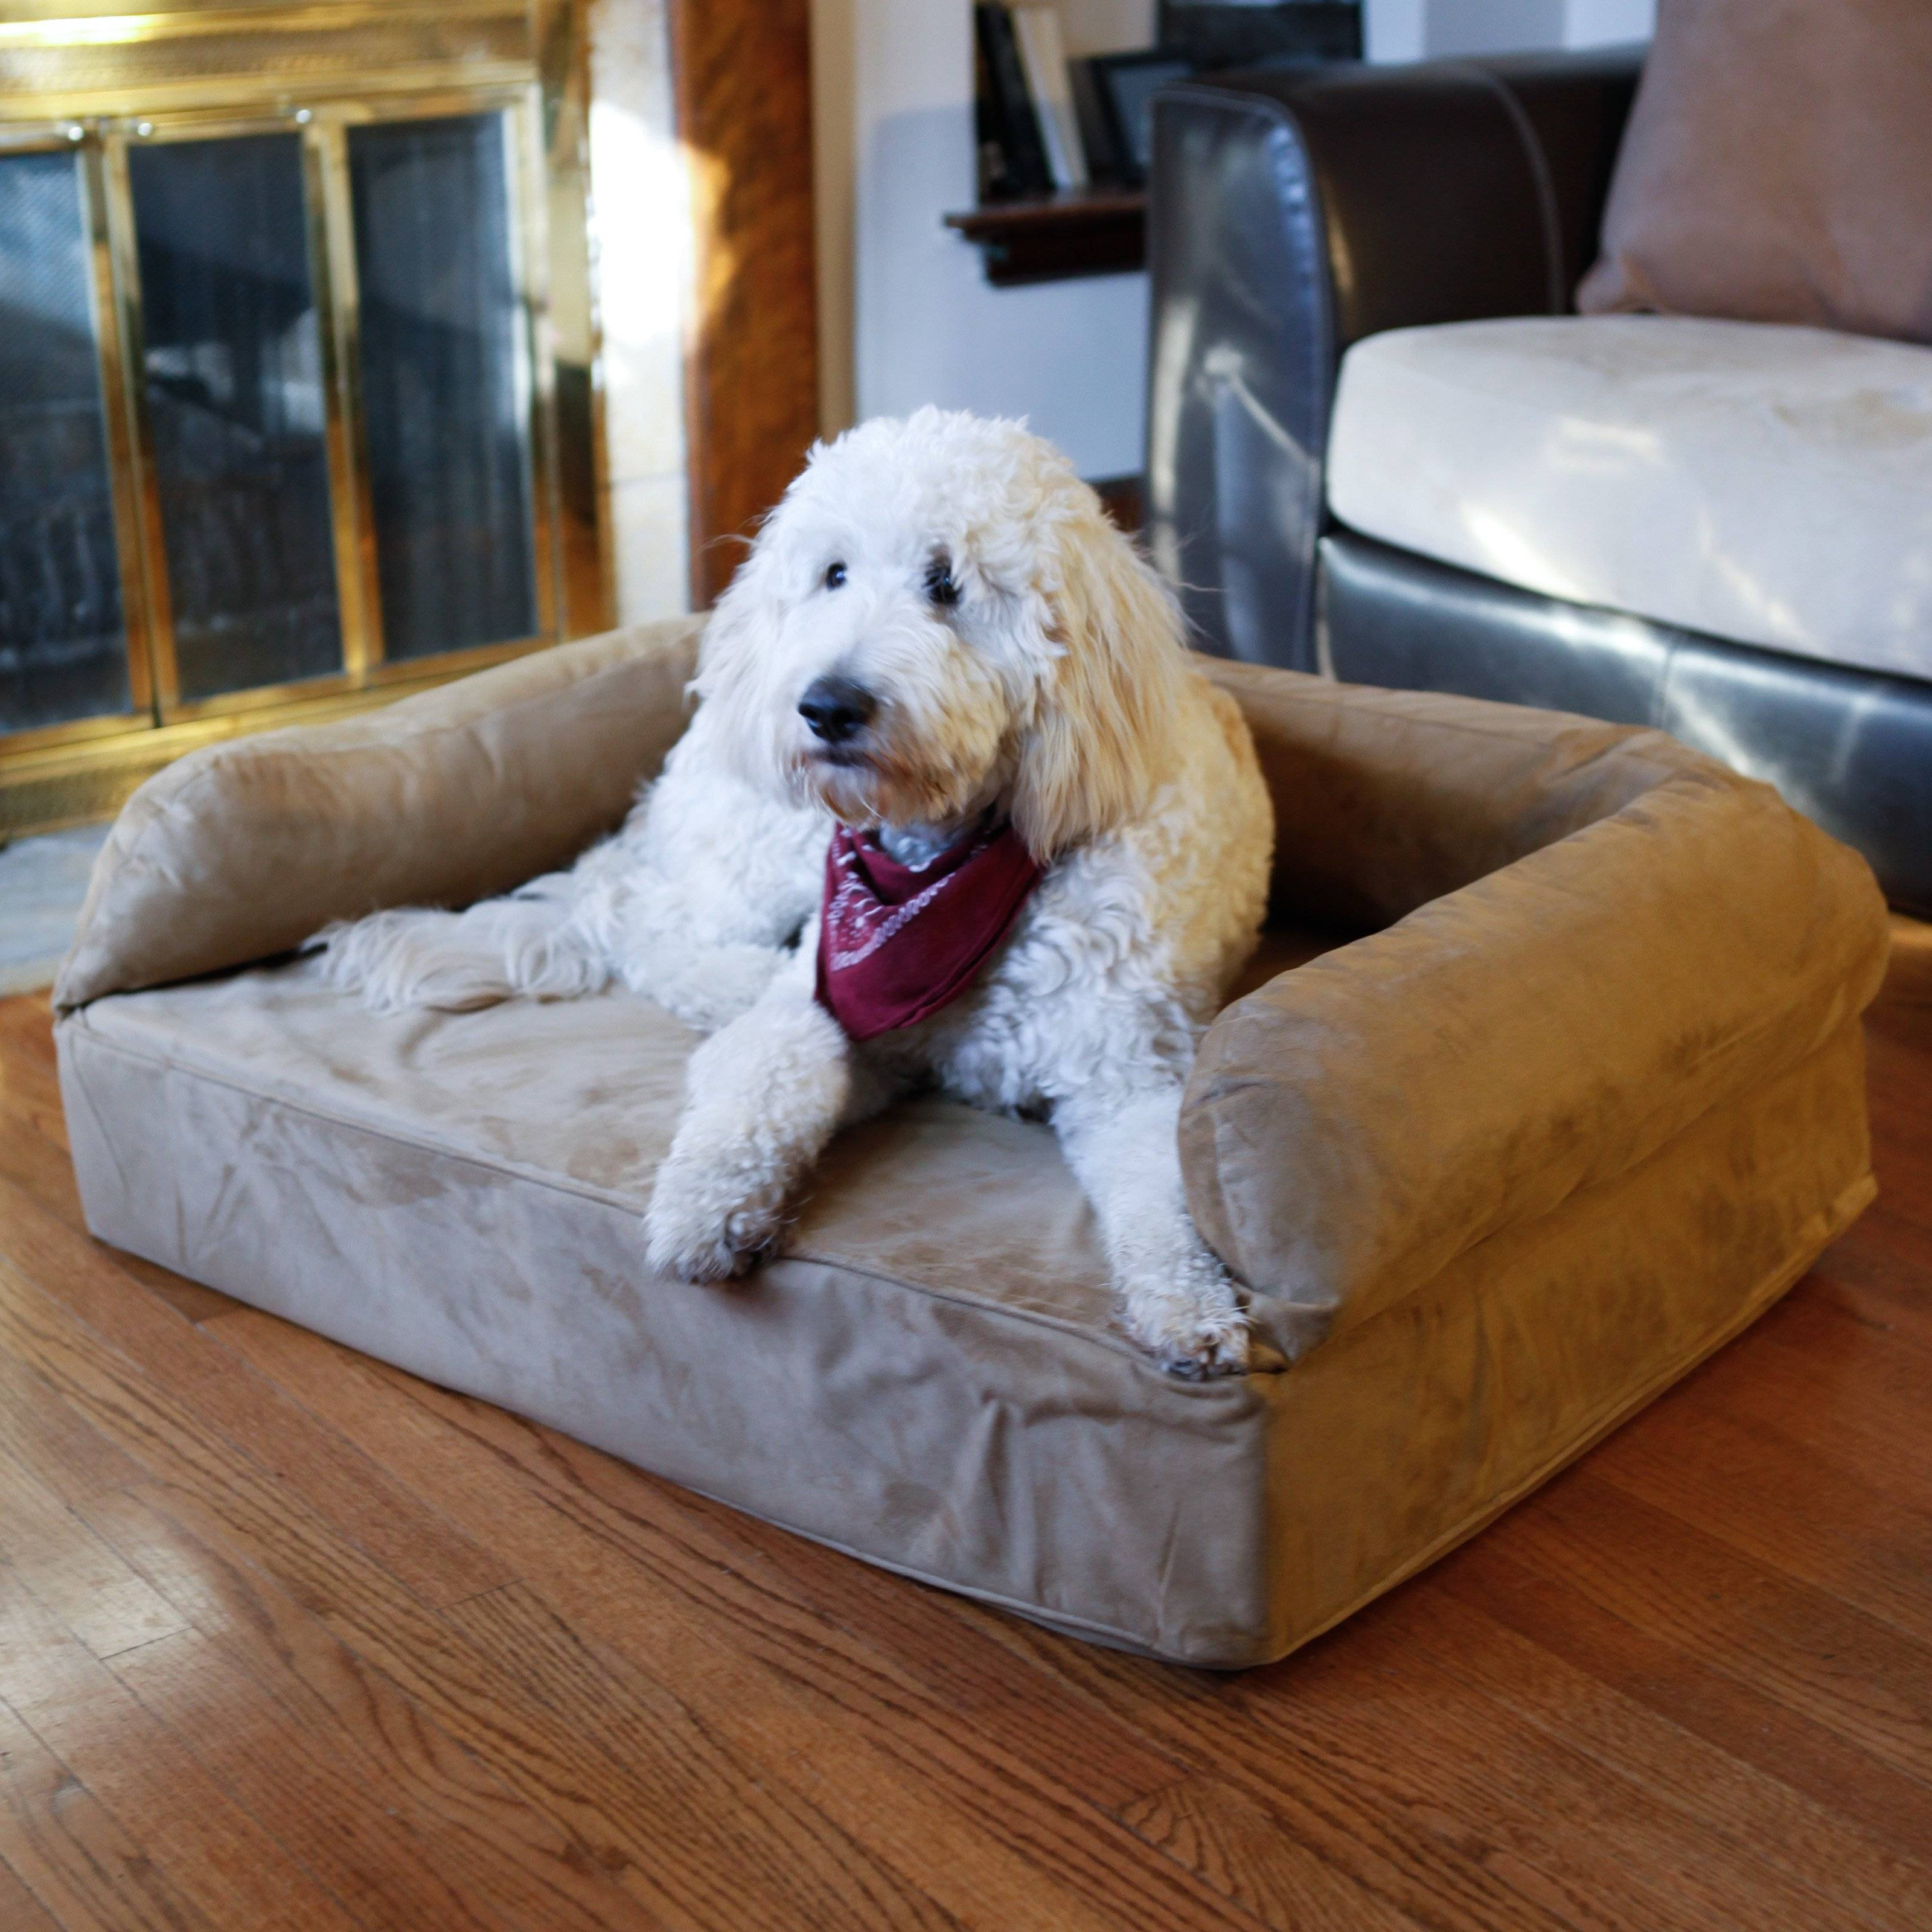 Snoozer Luxury Dog Sofa With Memory Foam | Hayneedle regarding Snoozer Luxury Dog Sofas (Image 8 of 15)